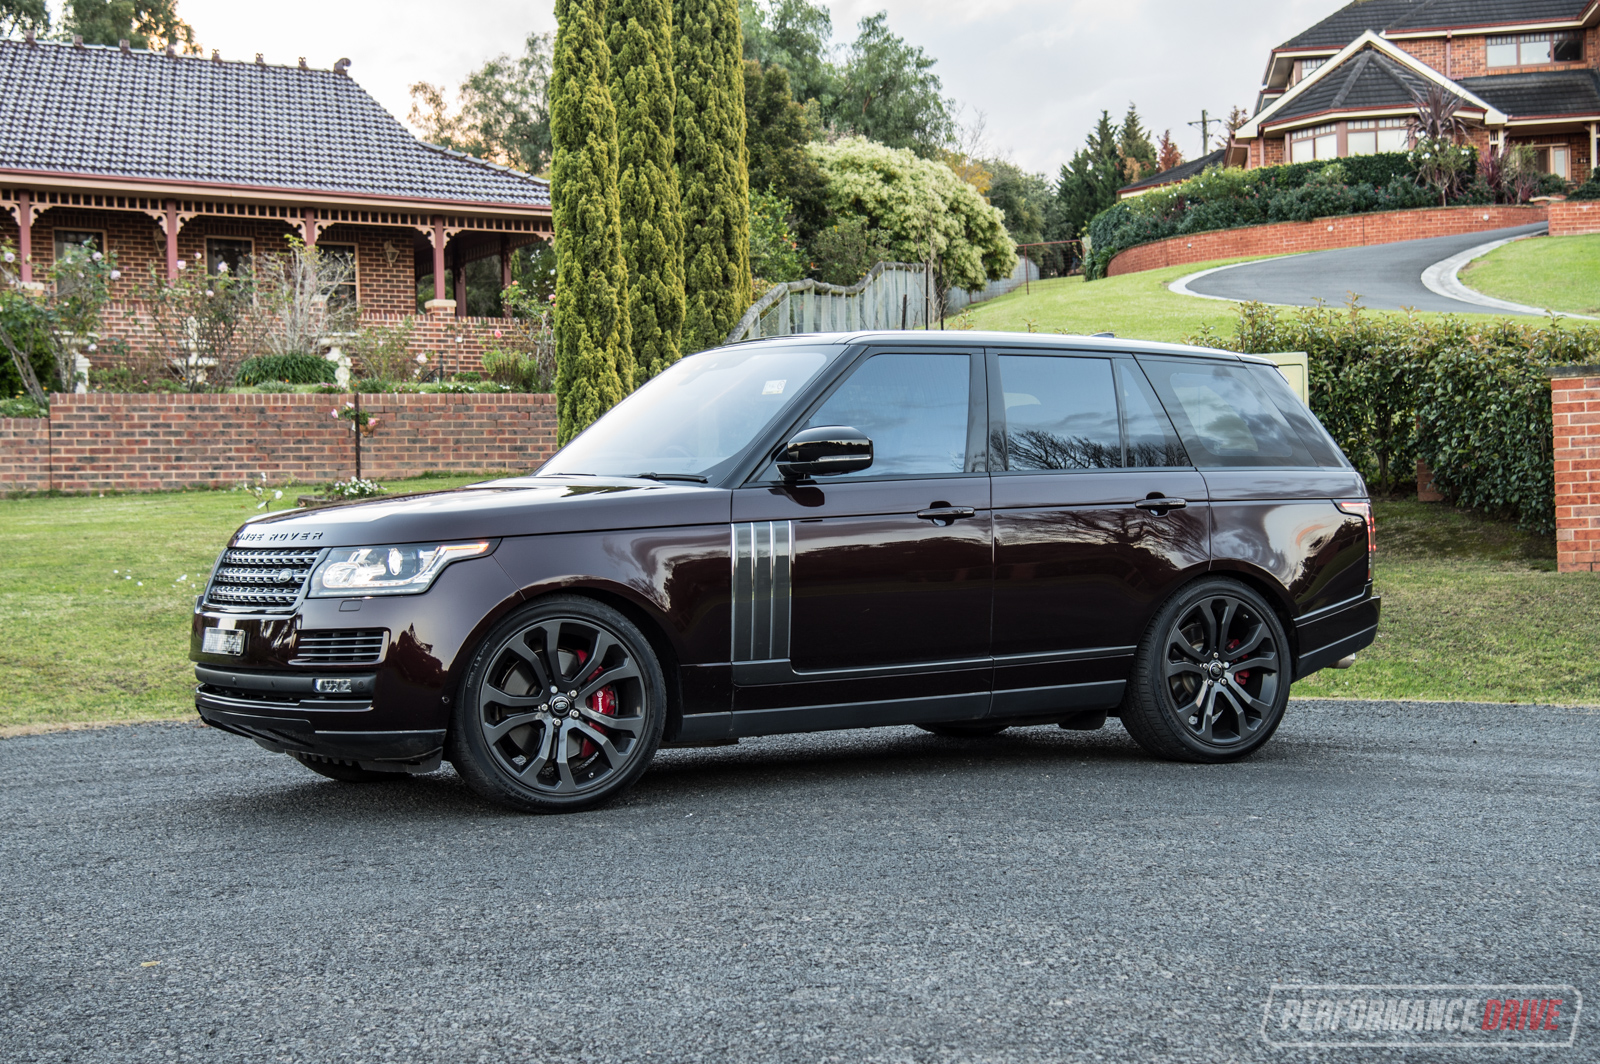 2017 range rover svautobiography dynamic review video performancedrive. Black Bedroom Furniture Sets. Home Design Ideas